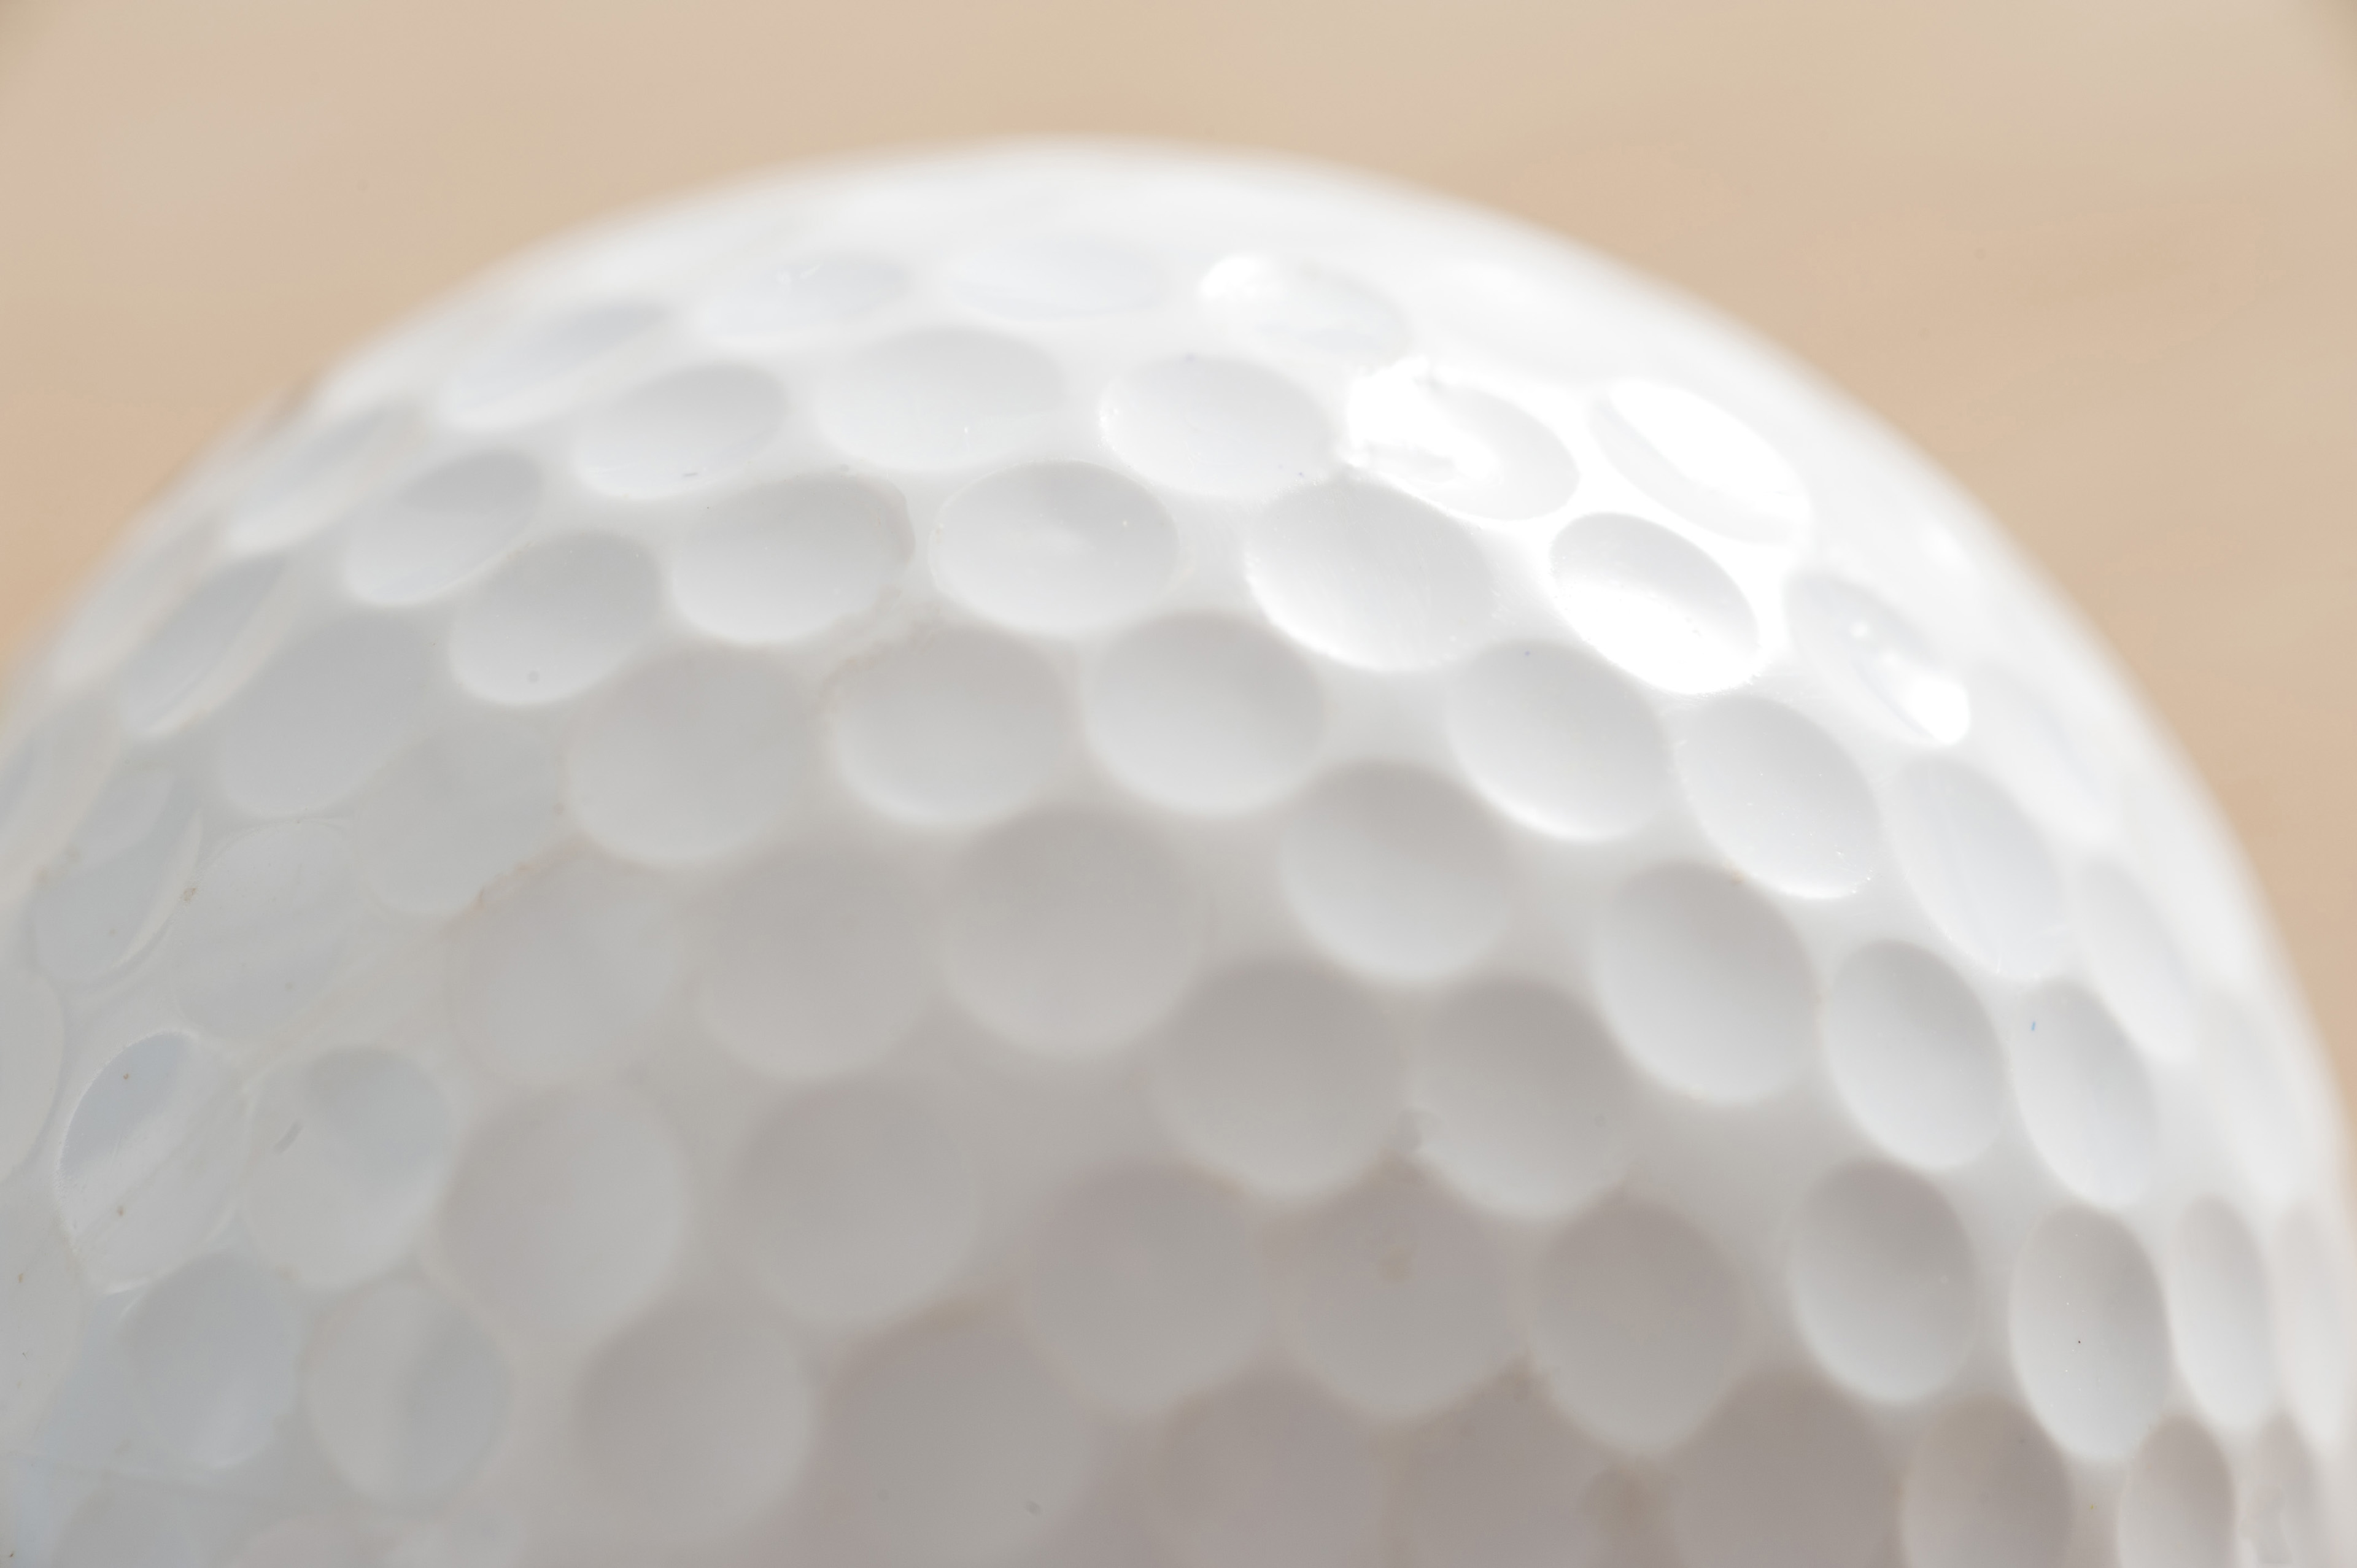 Close up detail of a white golf ball showing the dimpled texture of the surface in a golfing or sporting concept